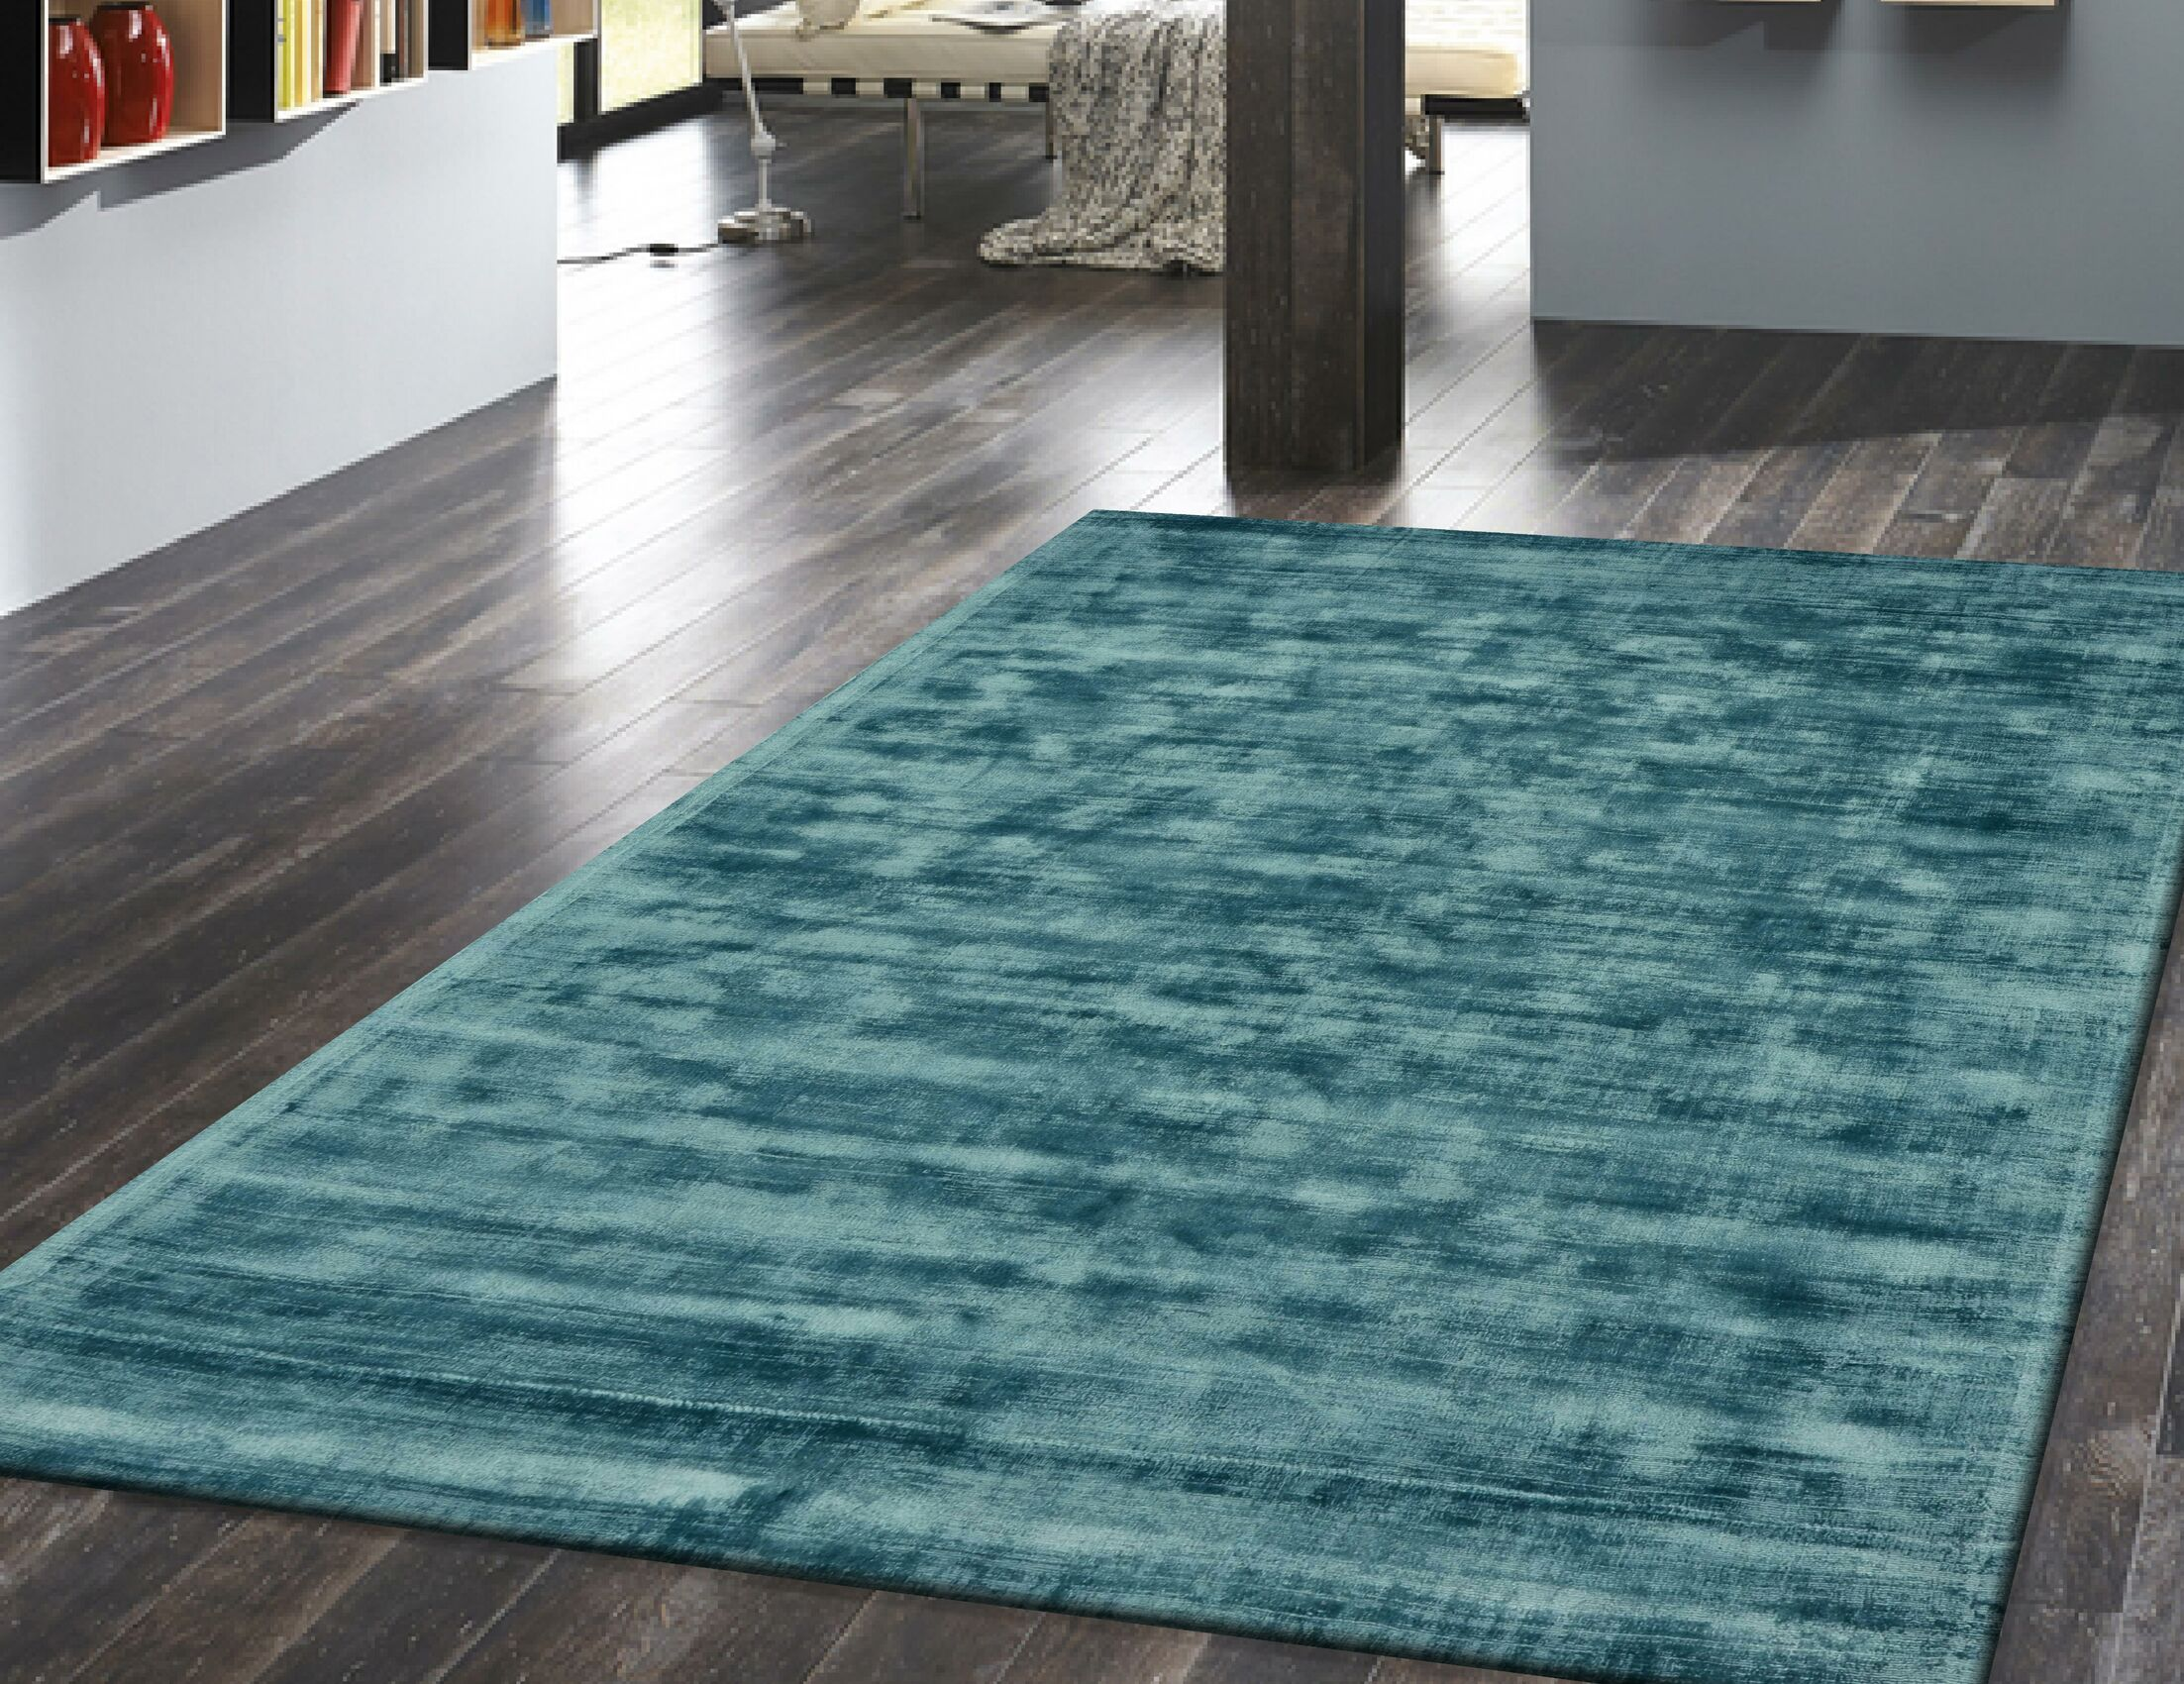 Antique Hand-Woven Teal Area Rug Rug Size: 6'7